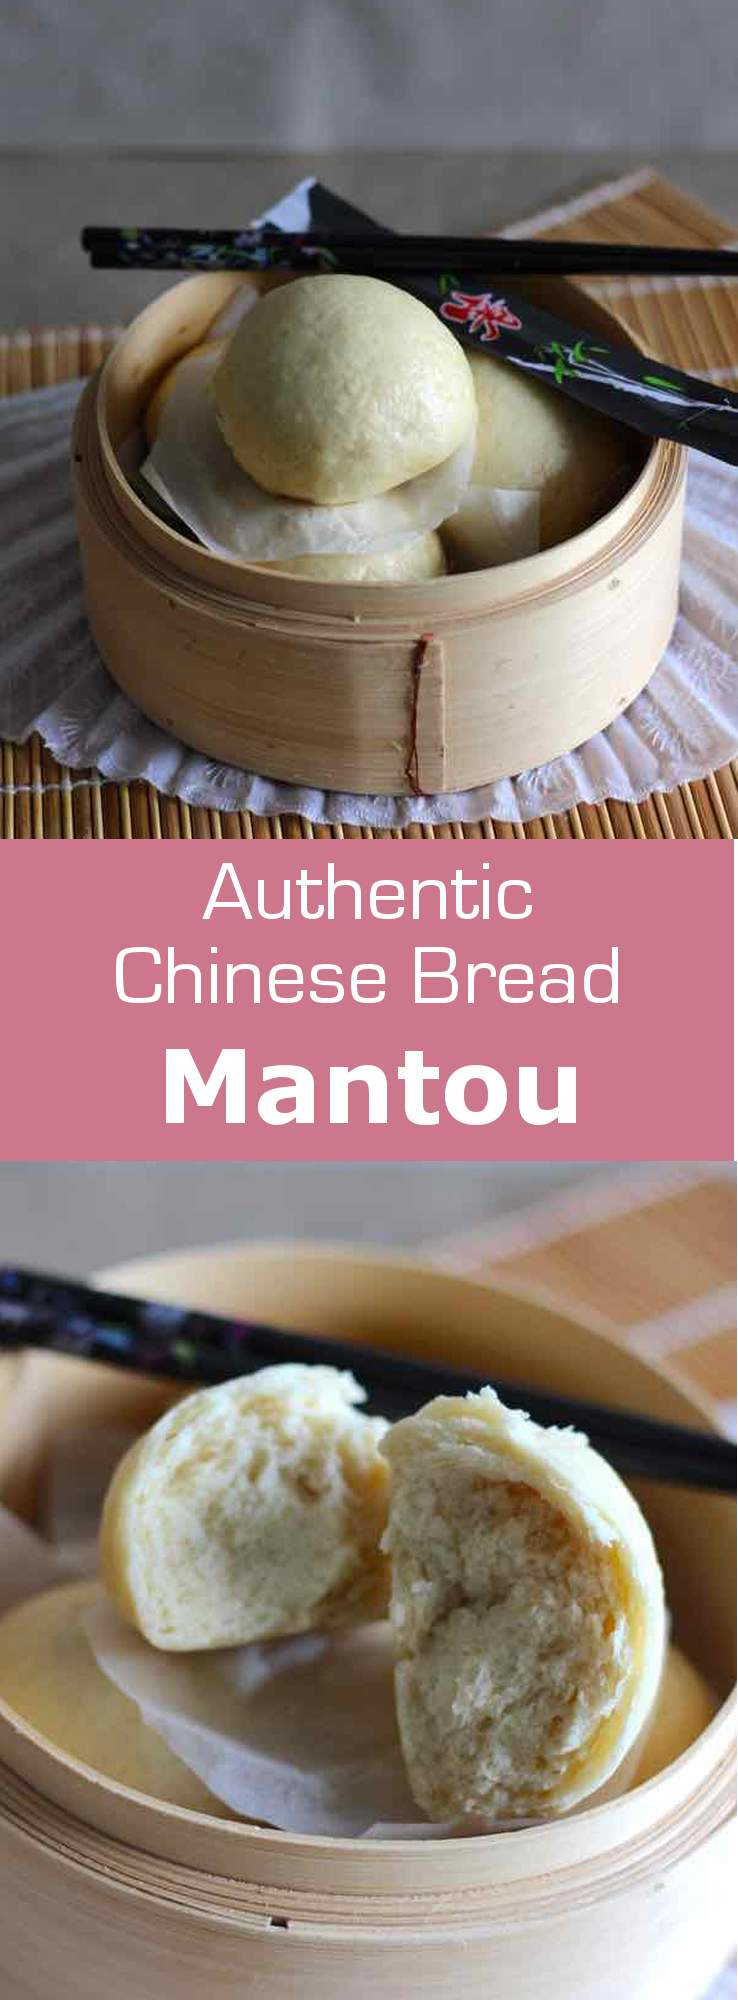 Mantou is a traditional Chinese steamed bun. It can be eaten plain or stuffed with pork meat or vegetables. #China #bread #196flavors